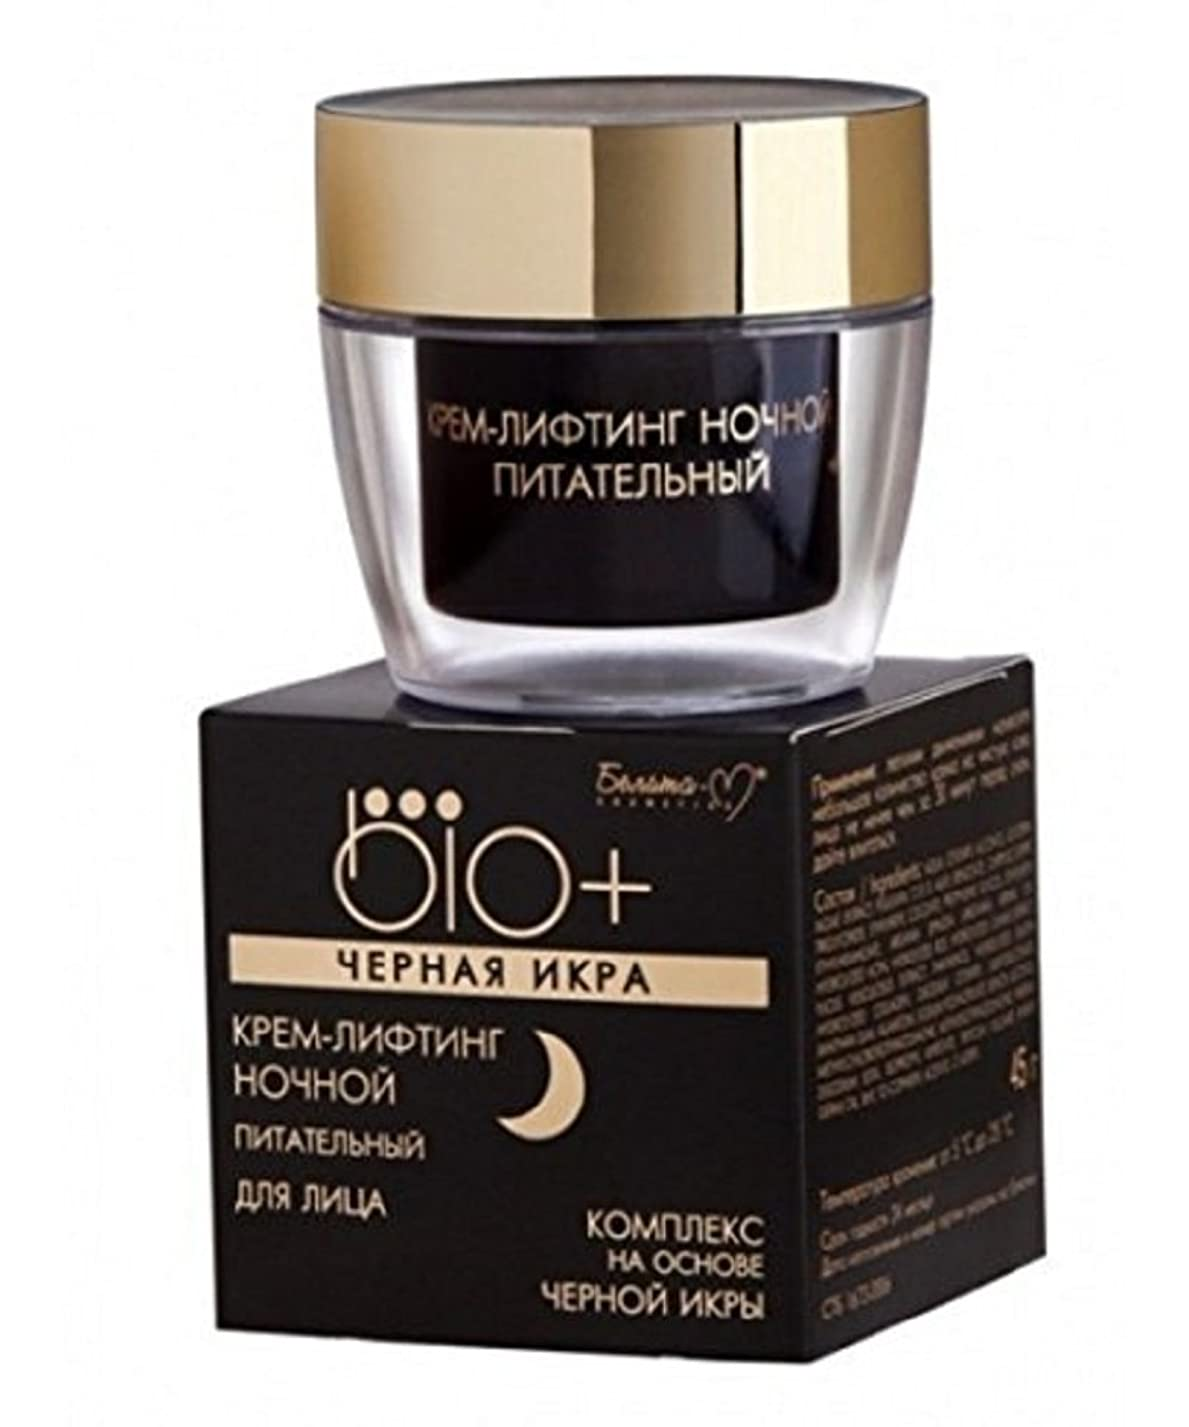 ヒロイン経歴ベルNIGHT MOISTURIZING LIFTING CREAM, on the basis of black caviar | Marine collagen and elastin, Argan oil | 45 g